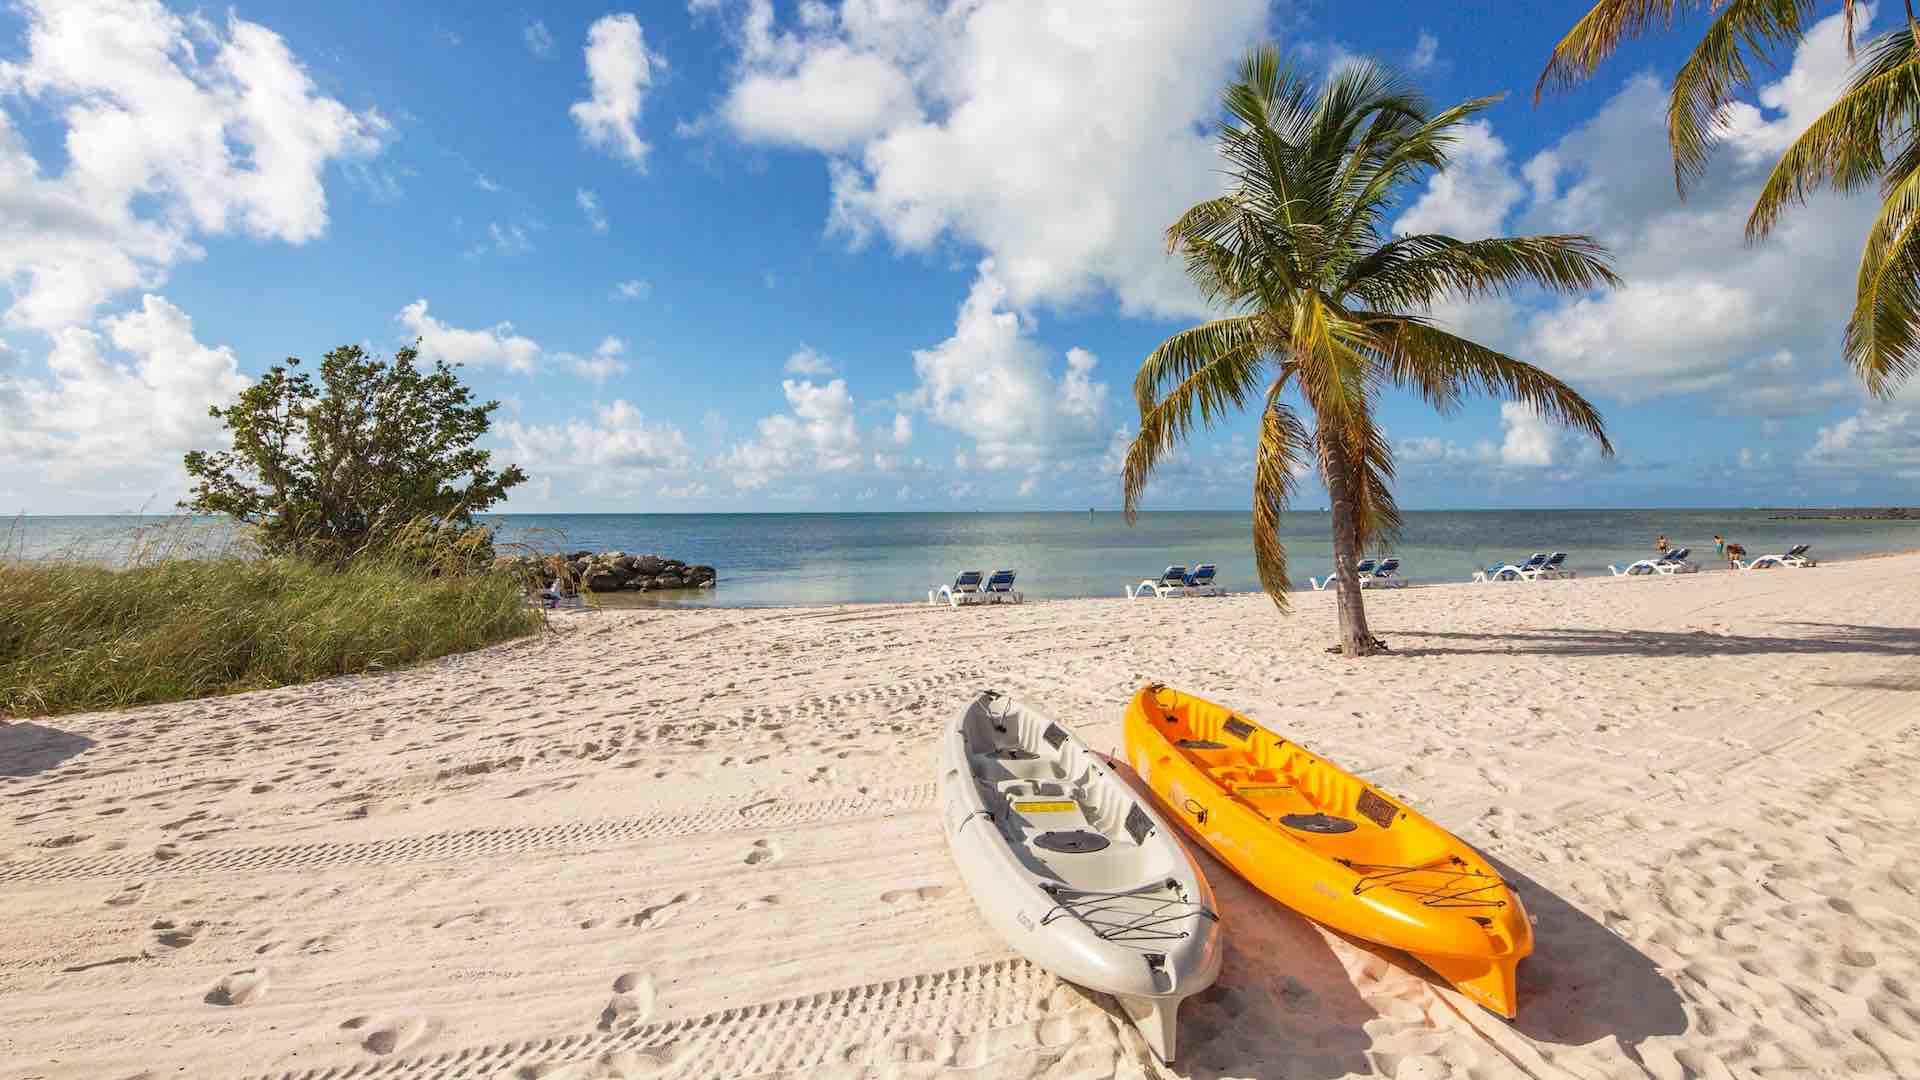 Watersport rentals are available on Smathers beach